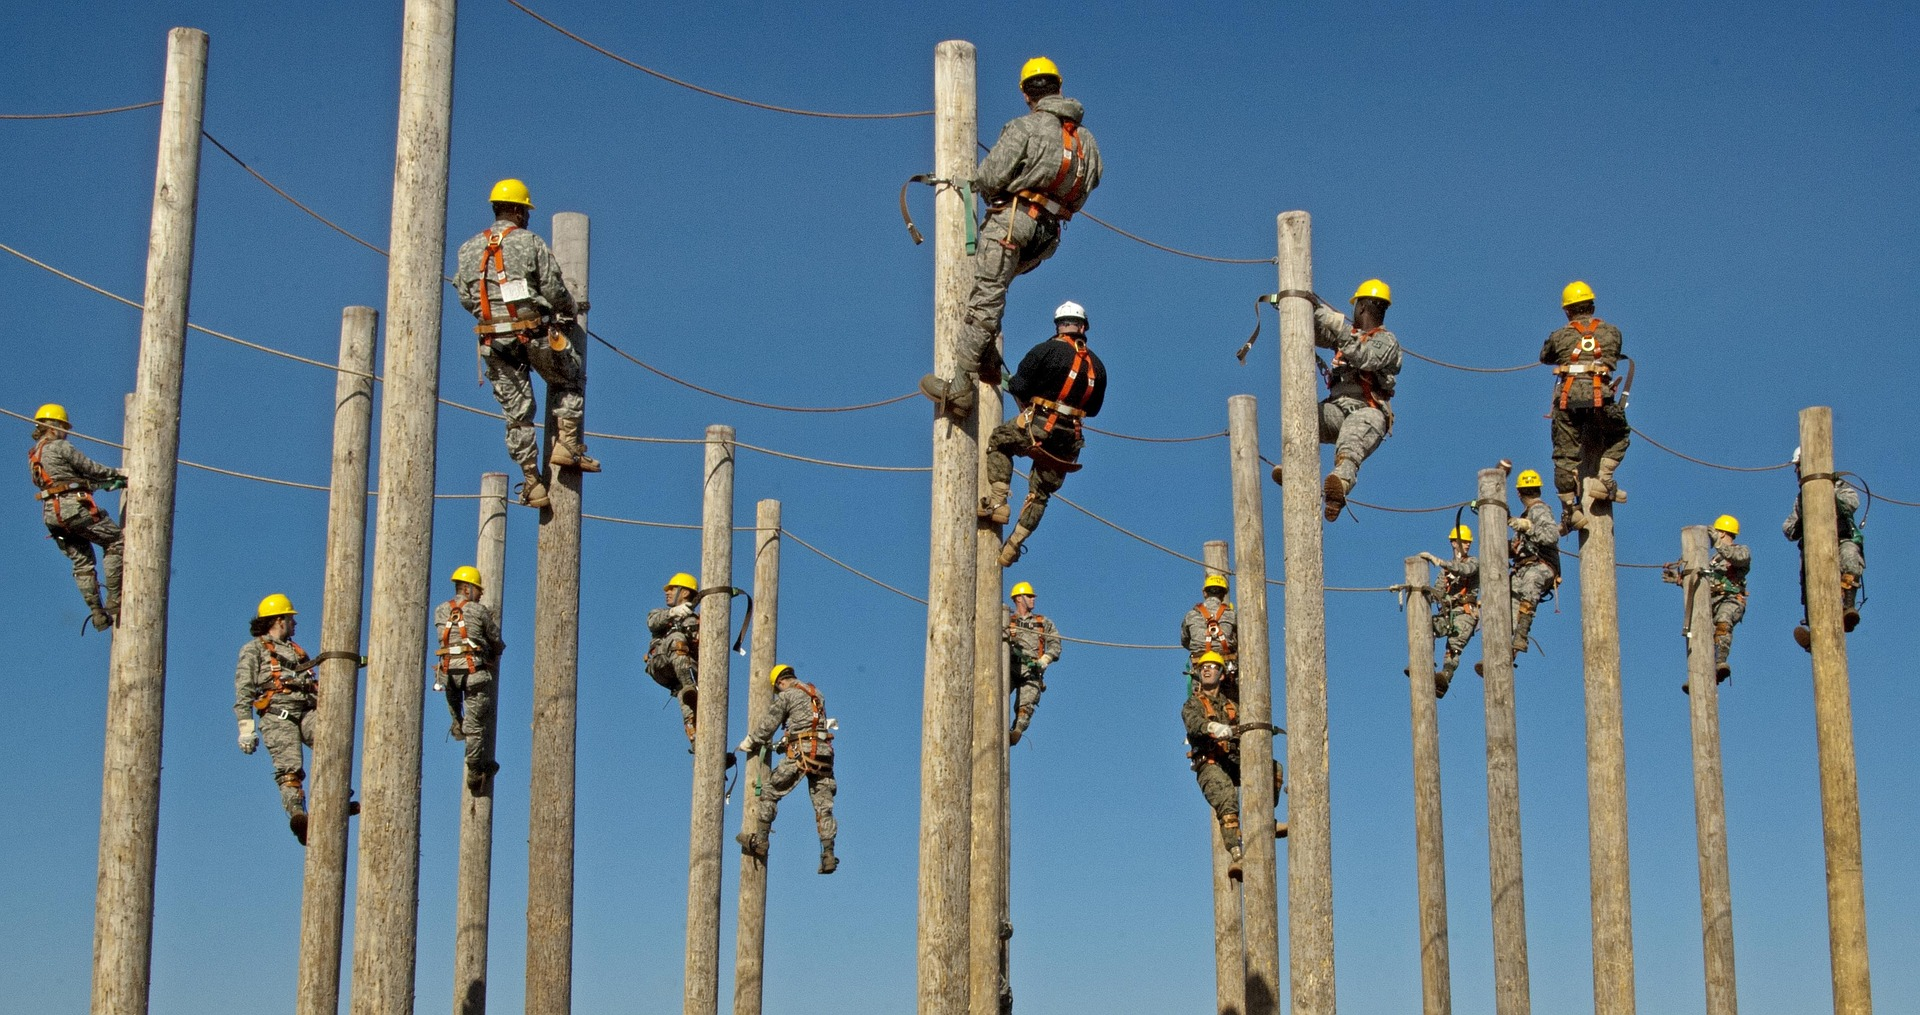 workers training to climb telegraph pole